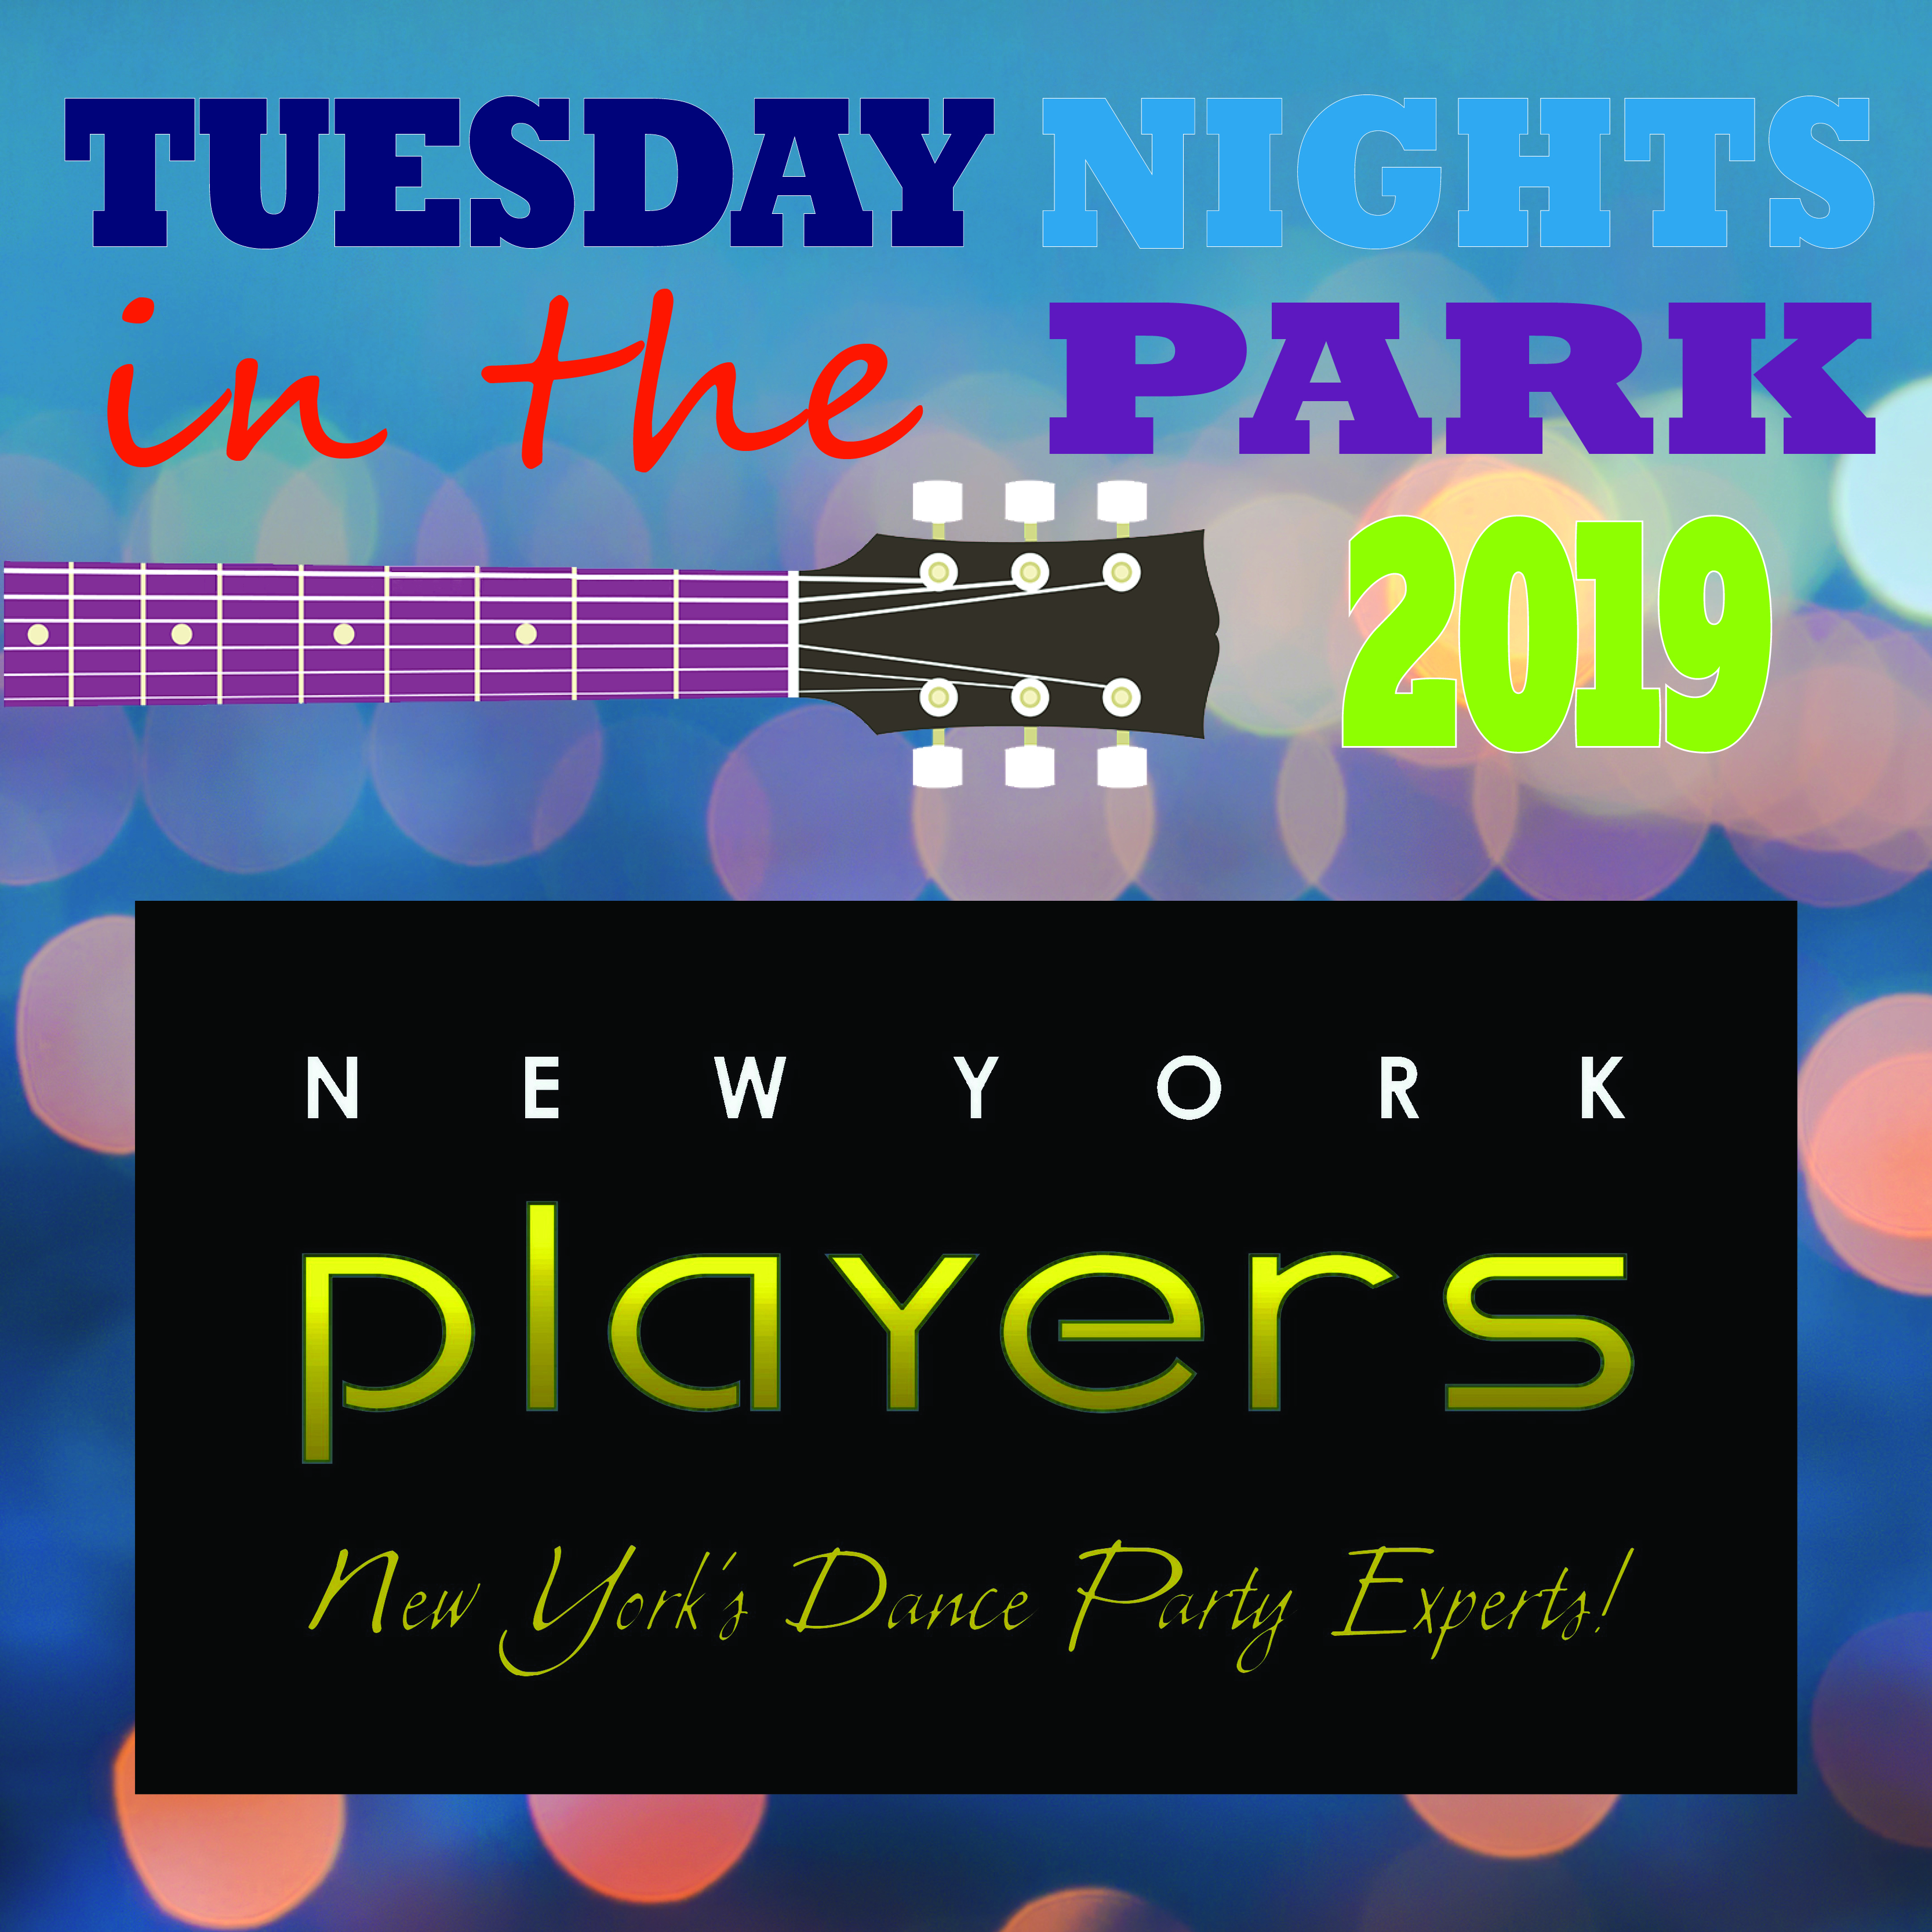 Tuesday Nights in the Park Concert - New York Players @ Cook Park, Frank A Leak Amphitheater for the Arts